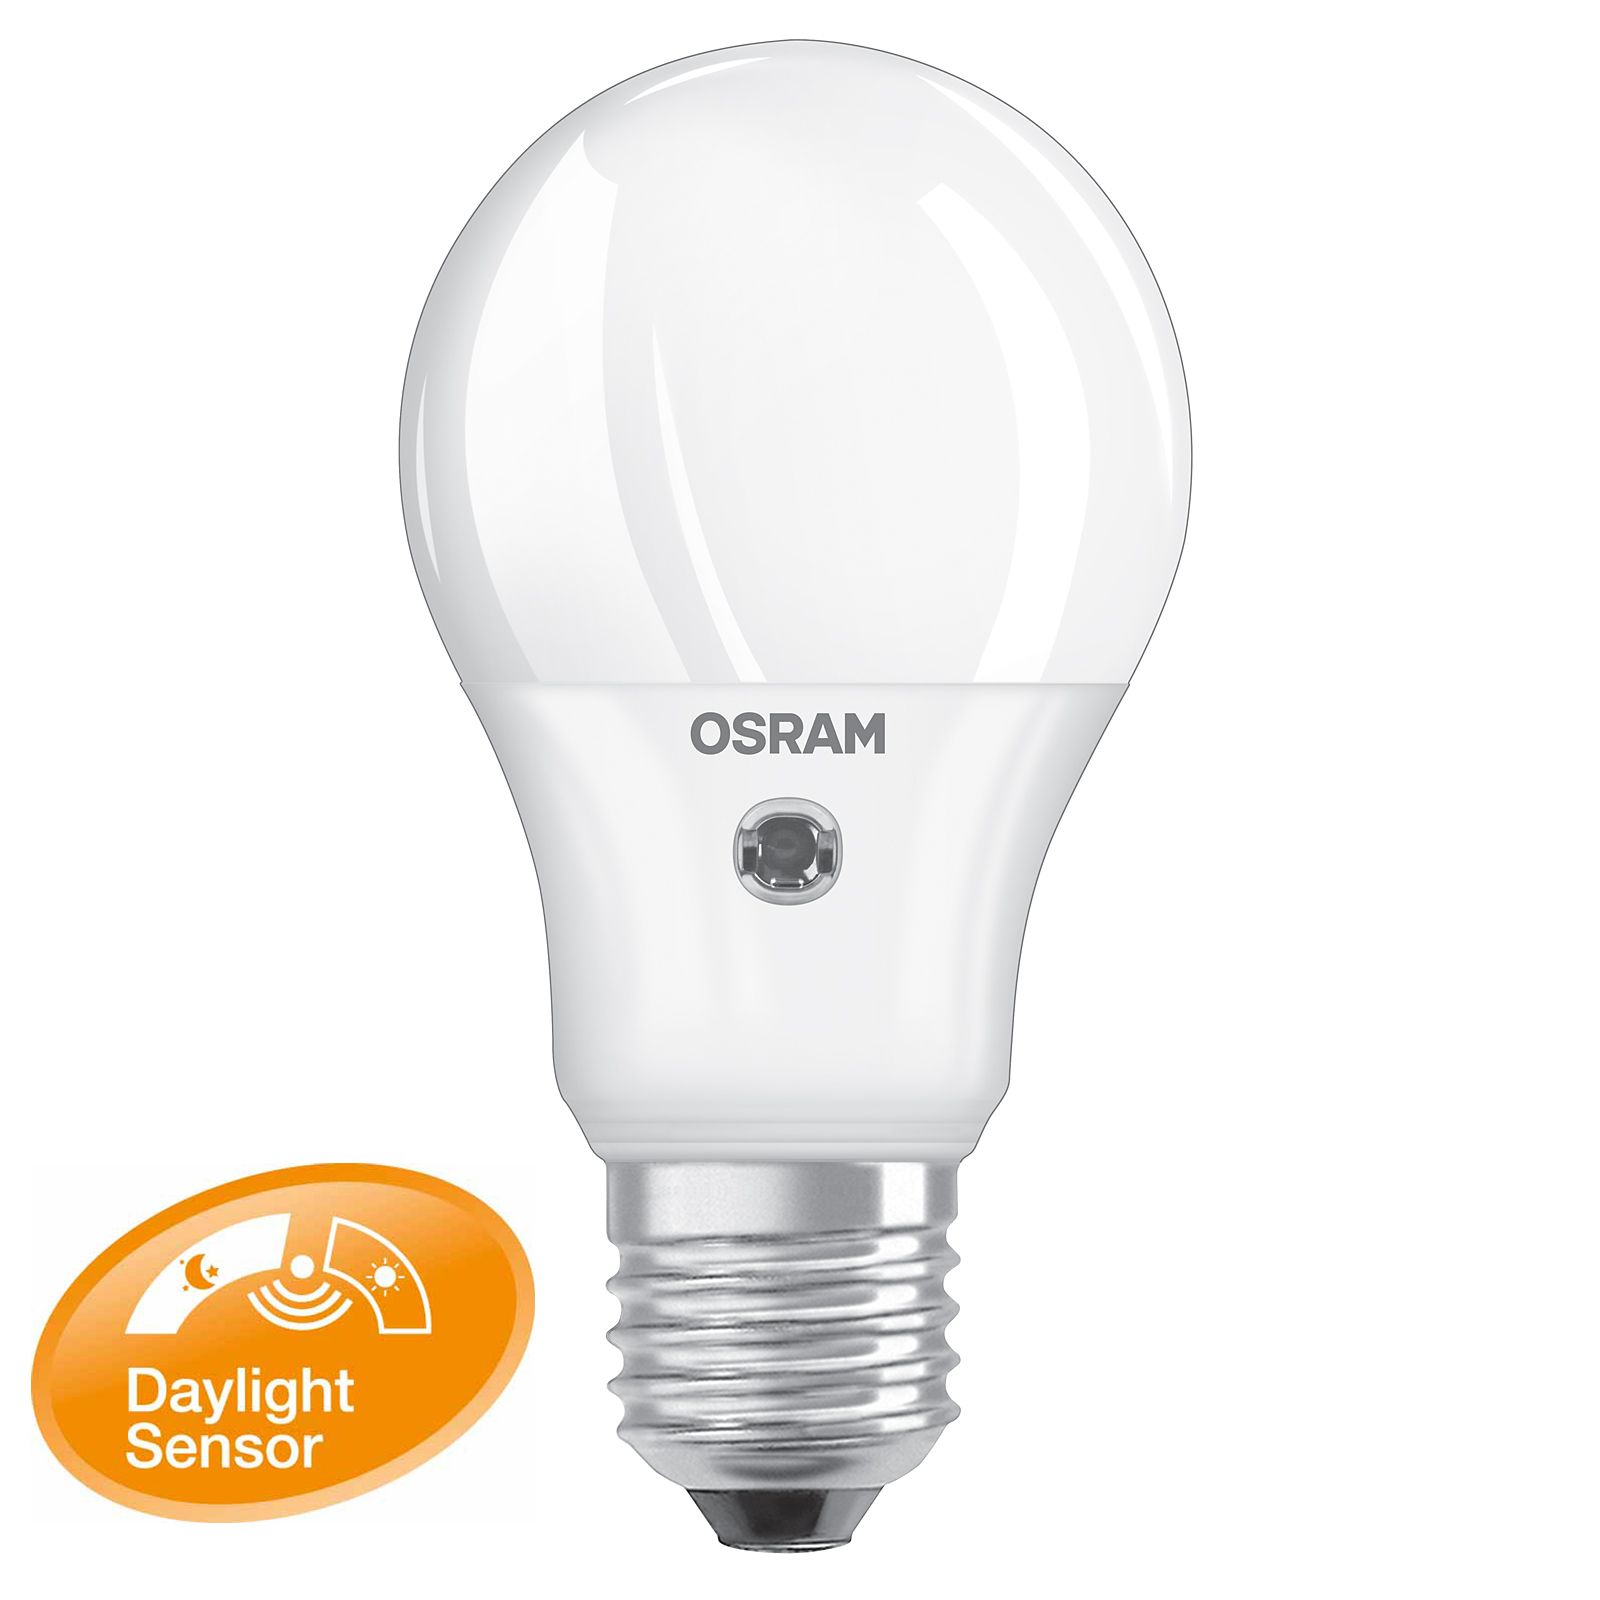 osram led lampen samsung osram philips und ikea led lampen test flicker stiftung warentest led. Black Bedroom Furniture Sets. Home Design Ideas